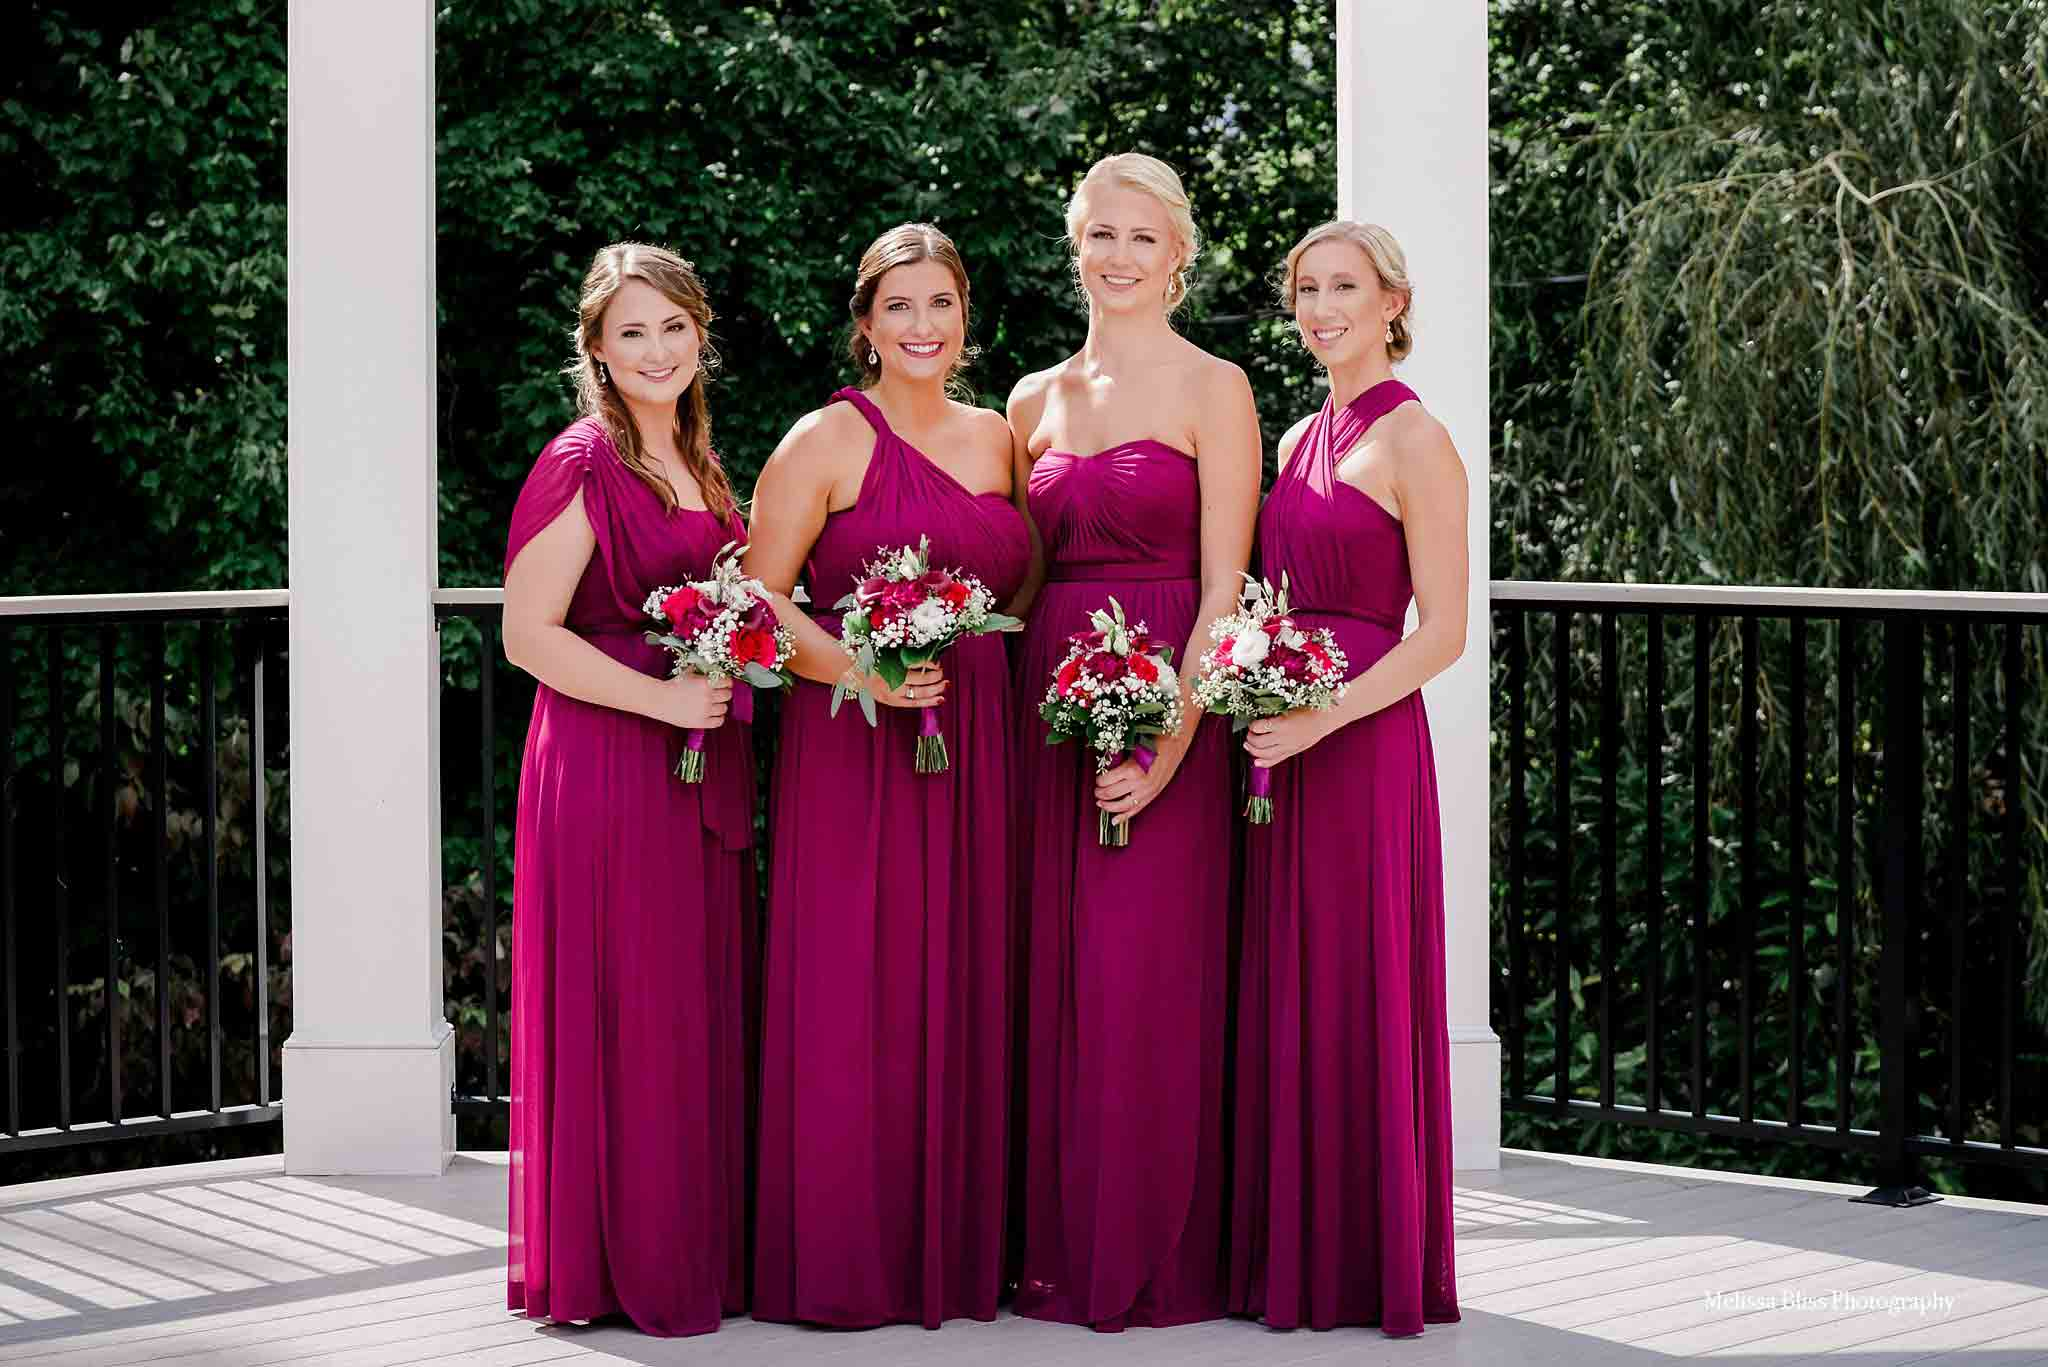 melissa-bliss-photography-bridal-party-photos-norfolk-virginia-beach-williamsburg-wedding-photographer.jpg